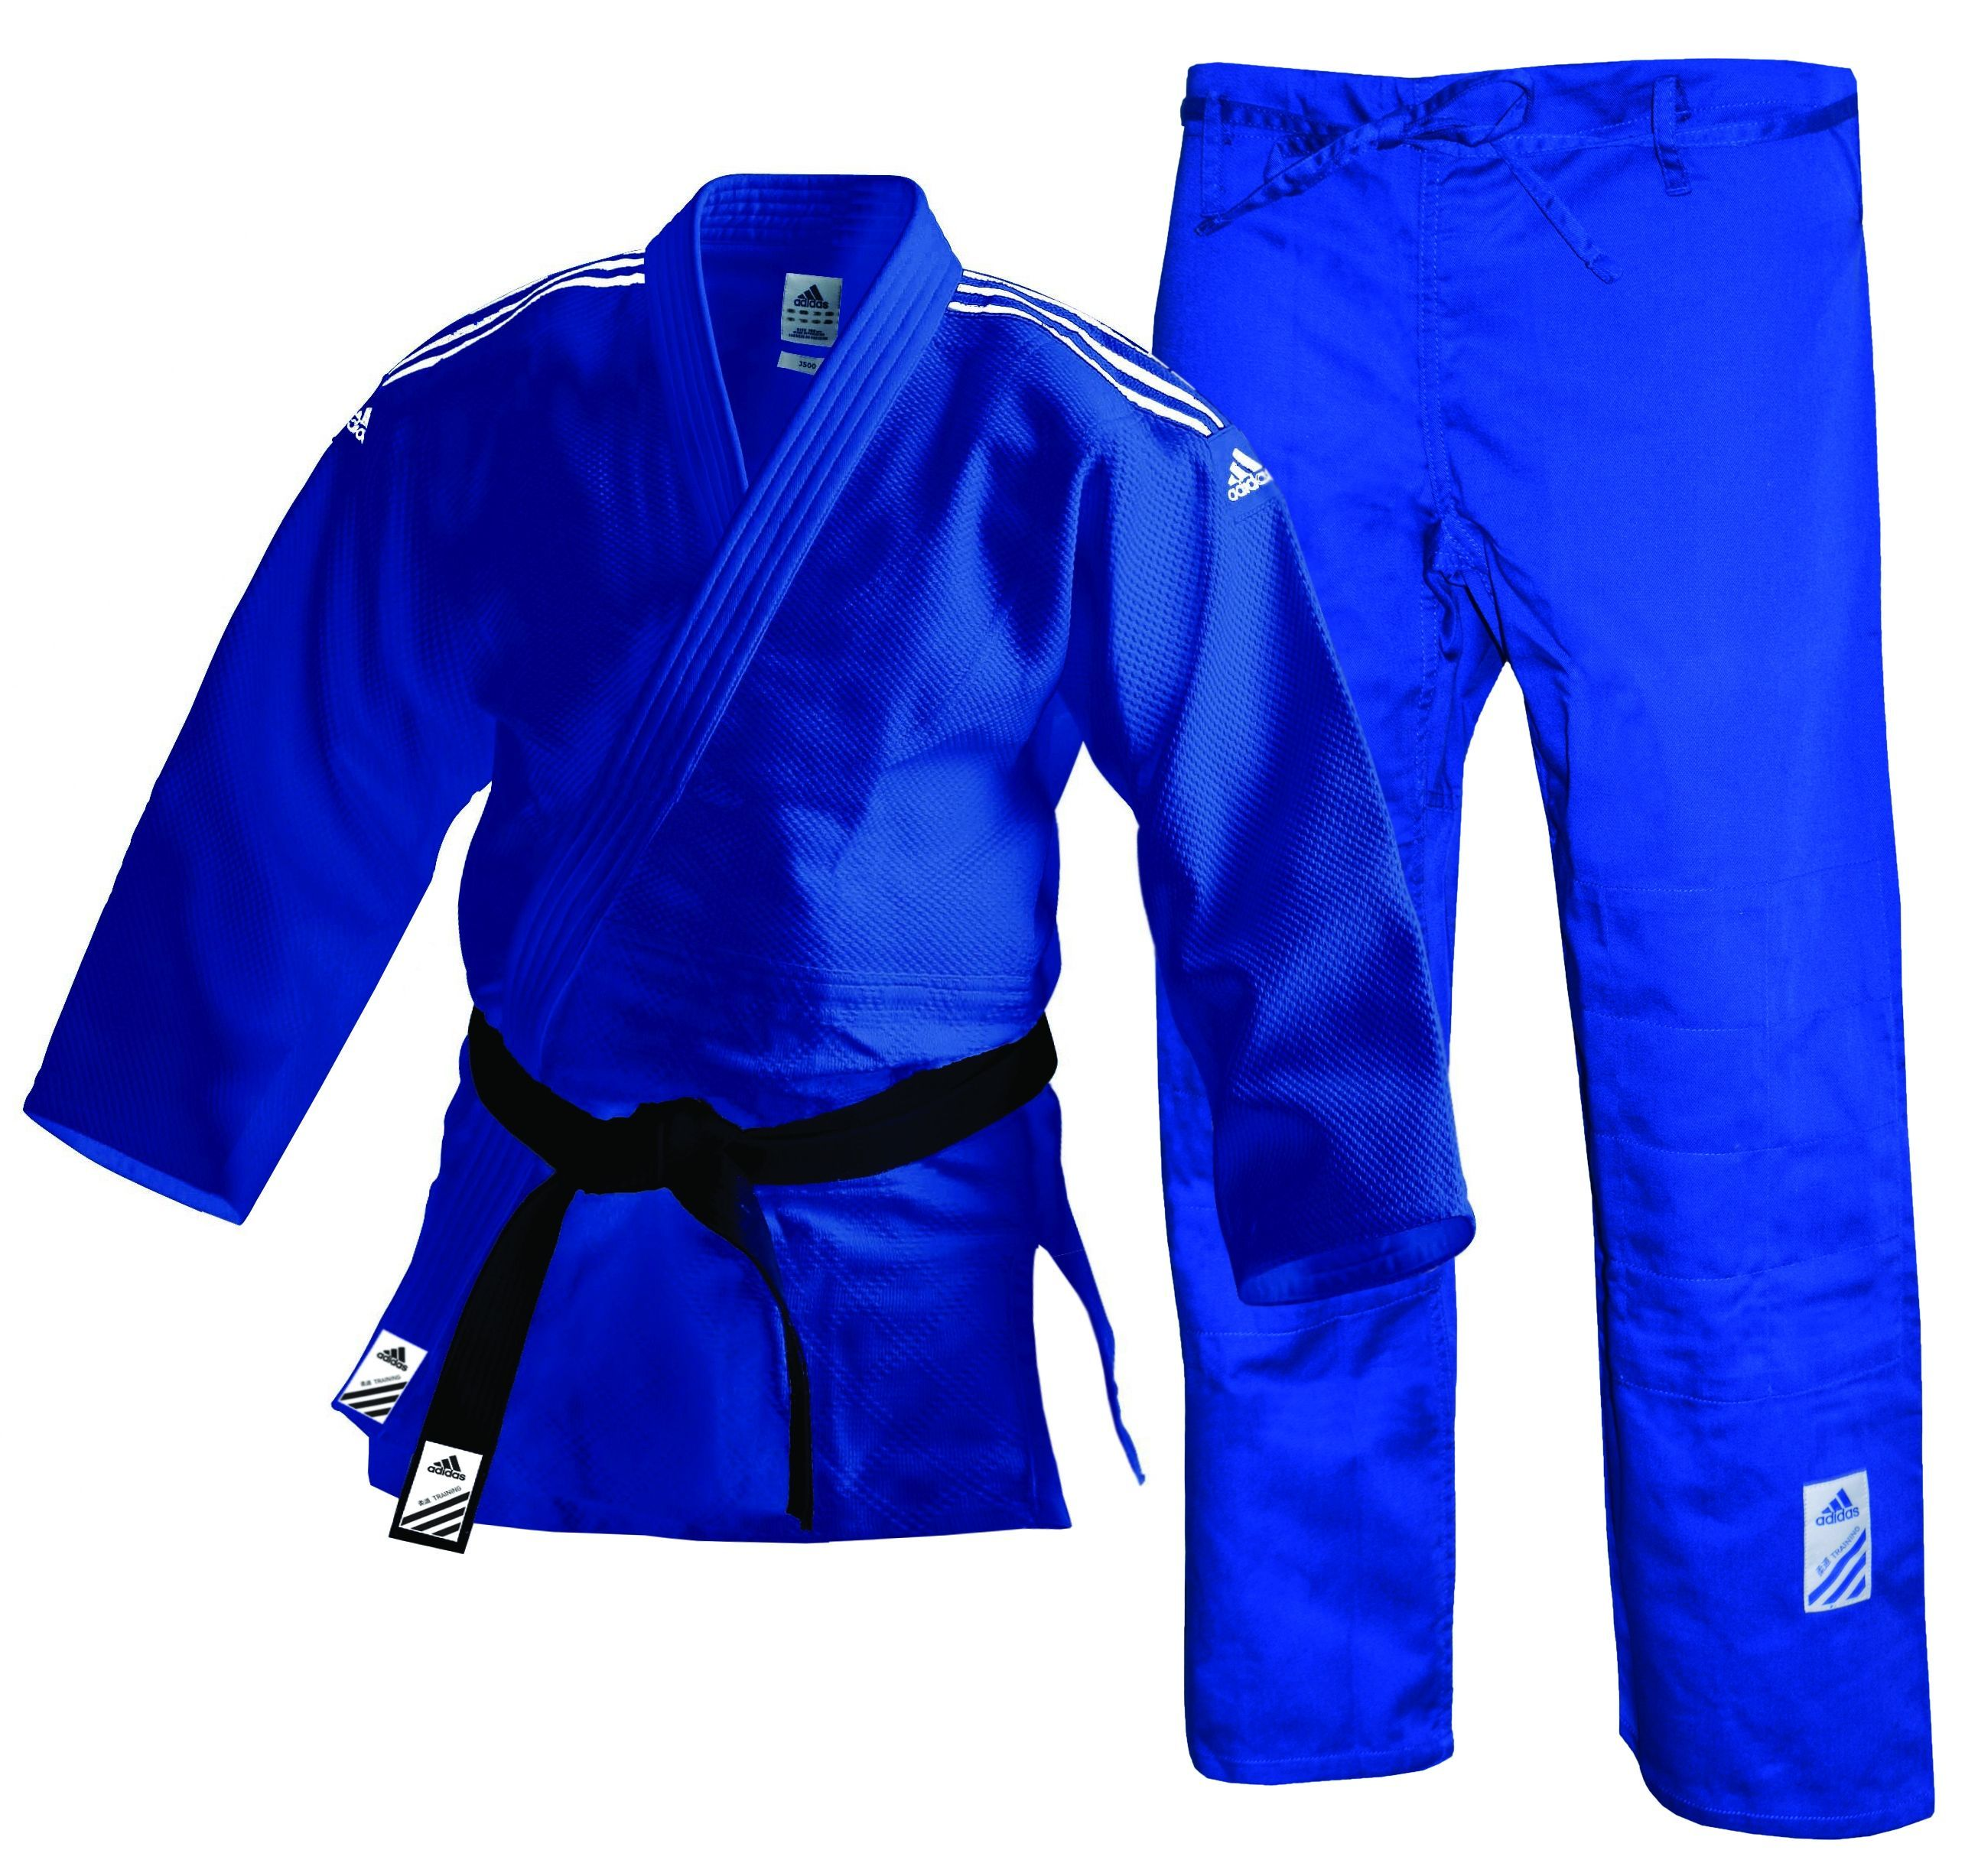 Adidas J500 Judo Suit Blue | Judo, Adidas, Suits